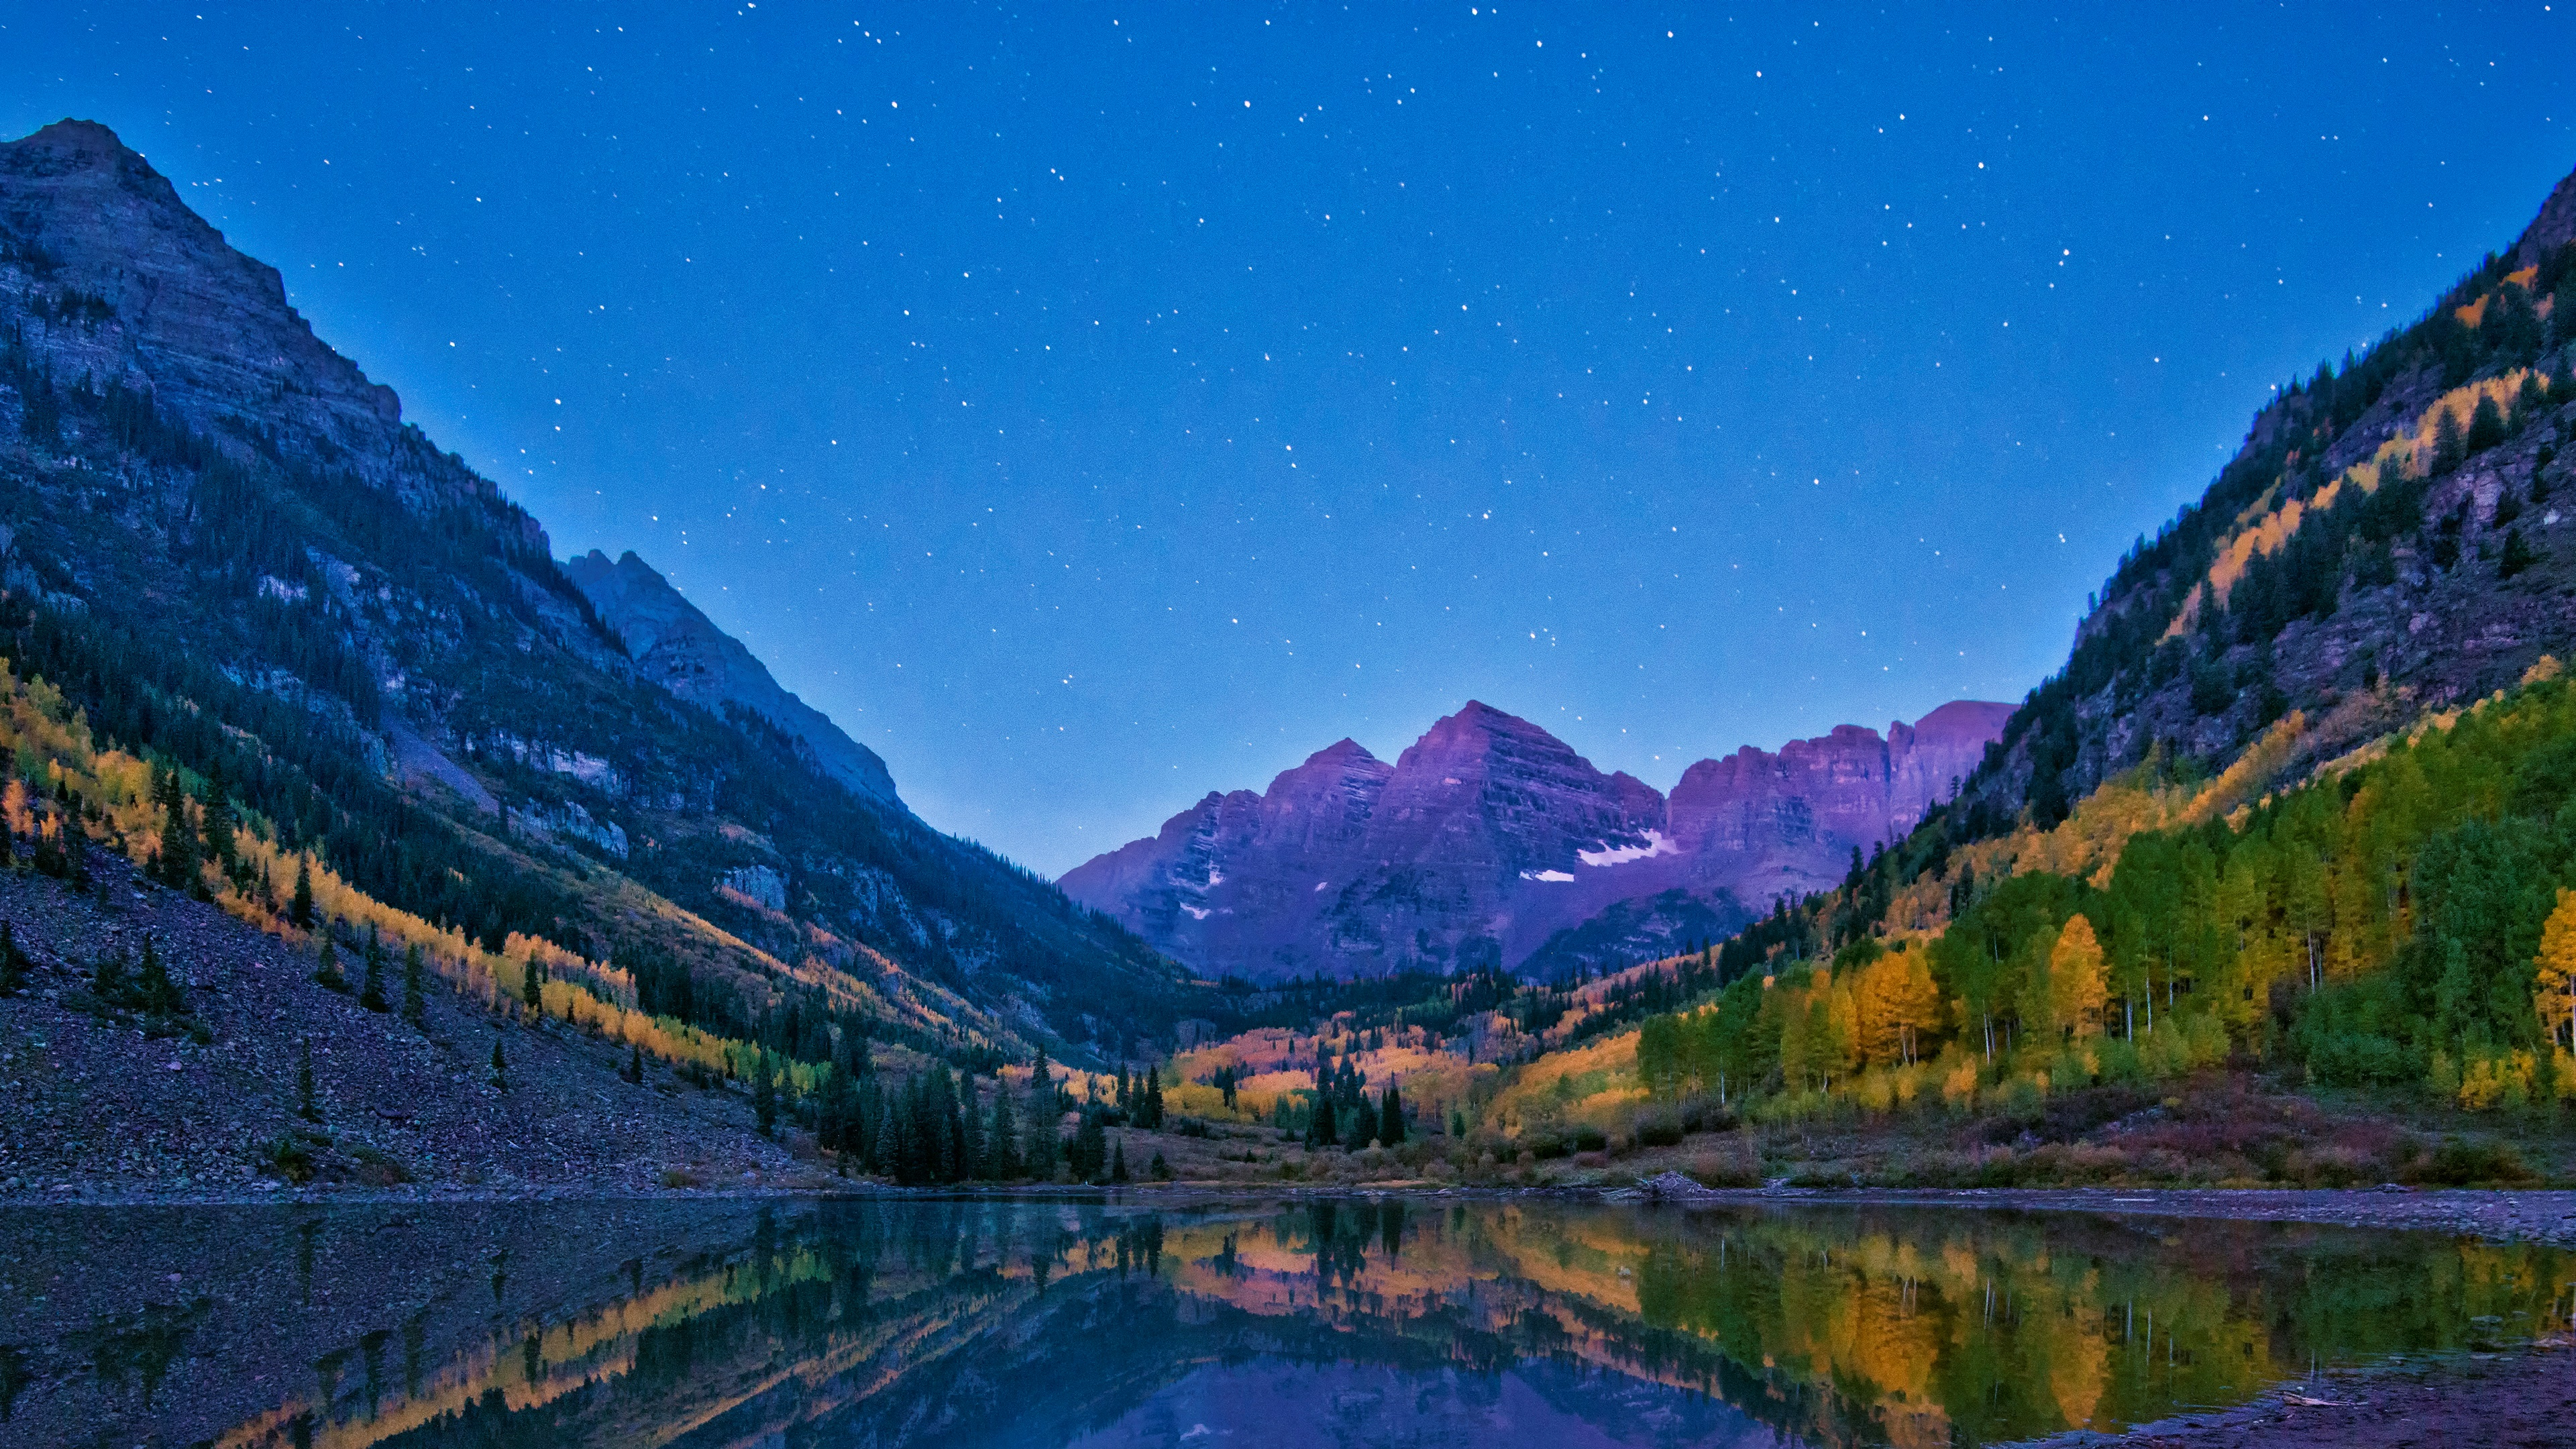 The Maroon Bells and the Crater lake wallpaper